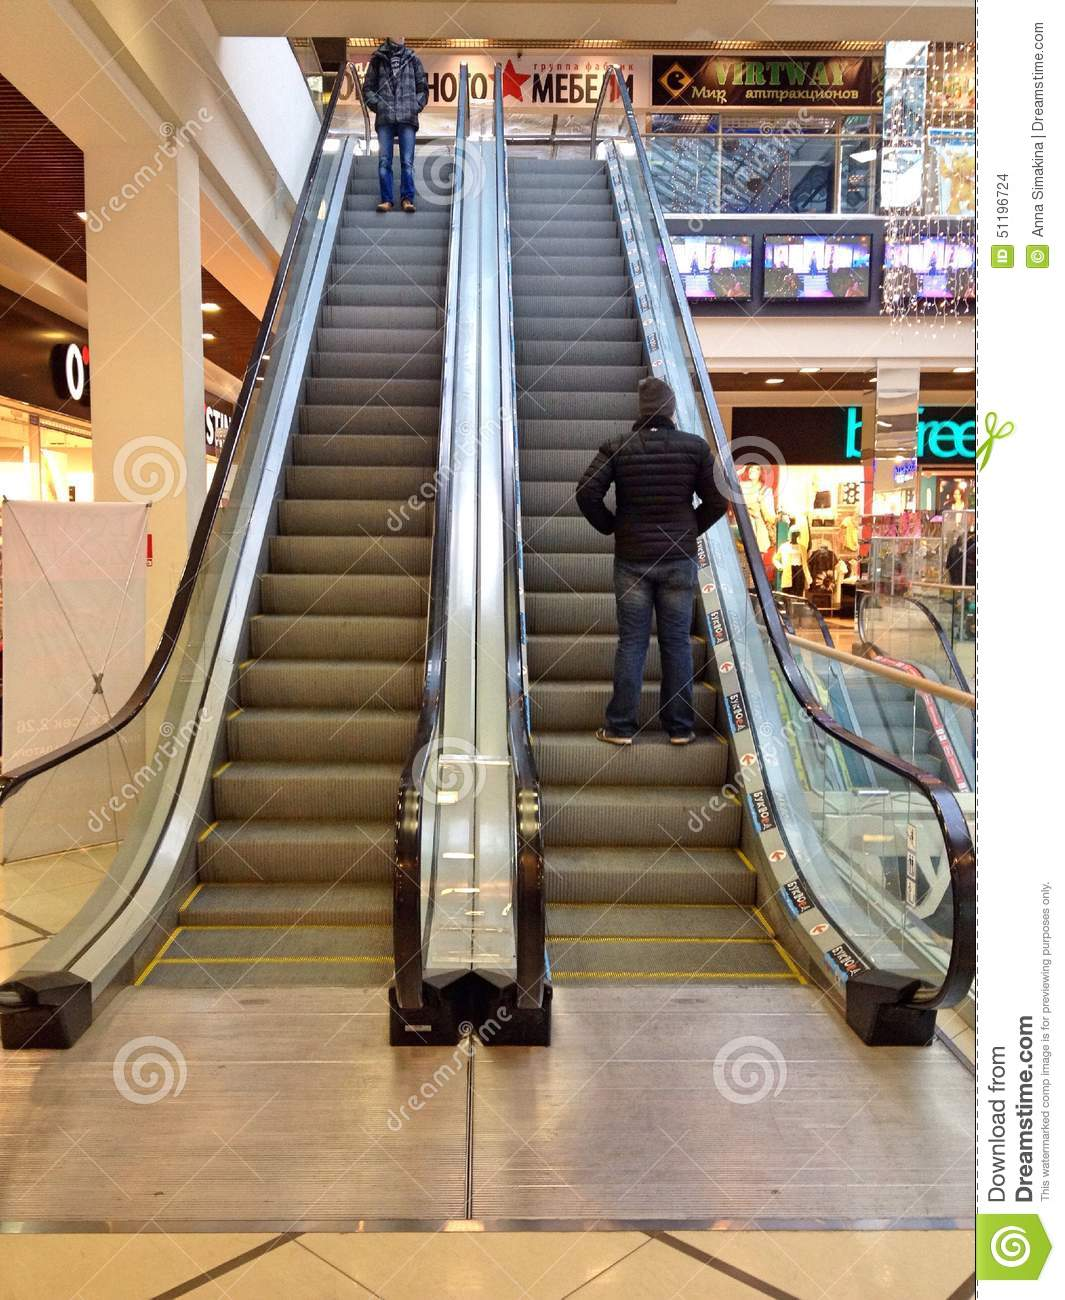 Moving Staircase Editorial Stock Image. Image Of People